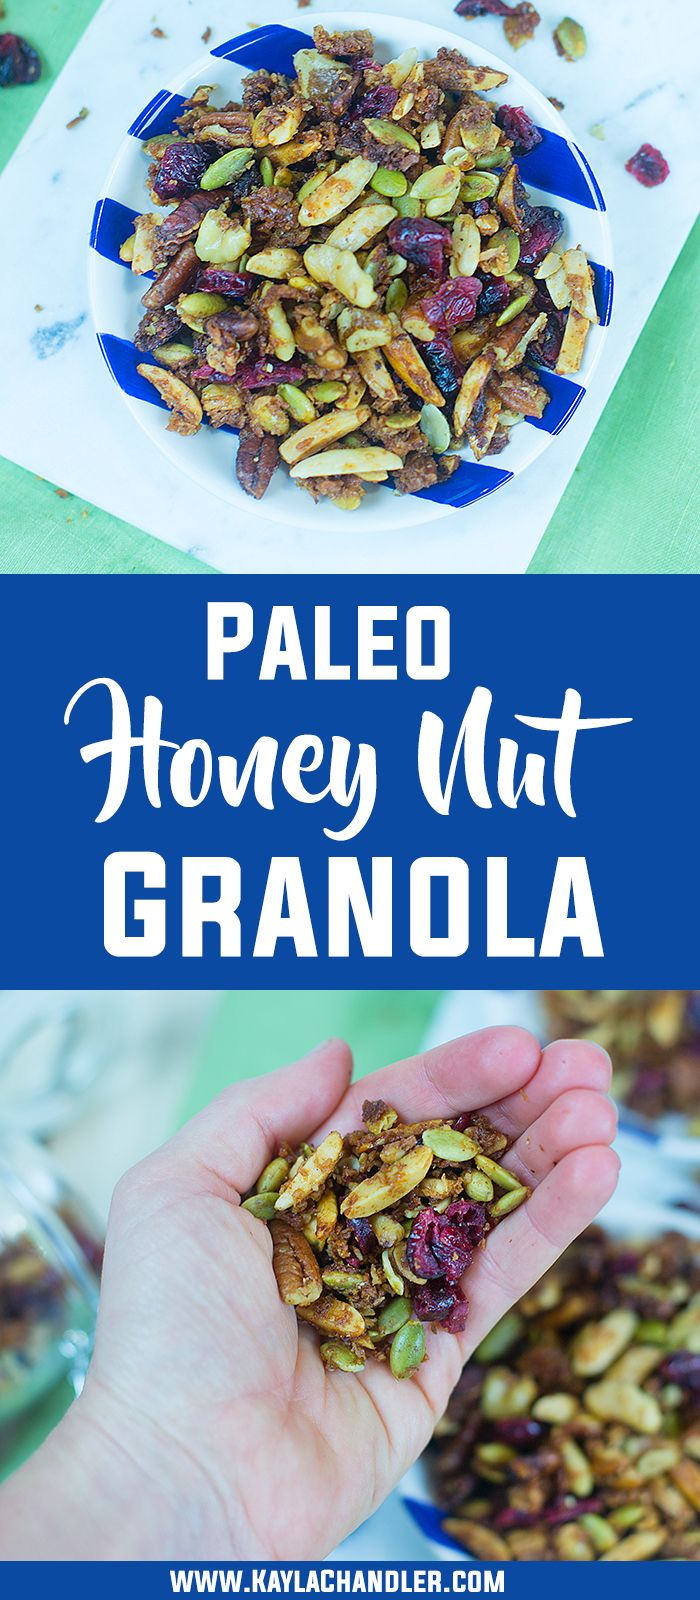 Paleo Honey Nut Granola with a low carb option for those on a keto diet.  This stuff is addictive!